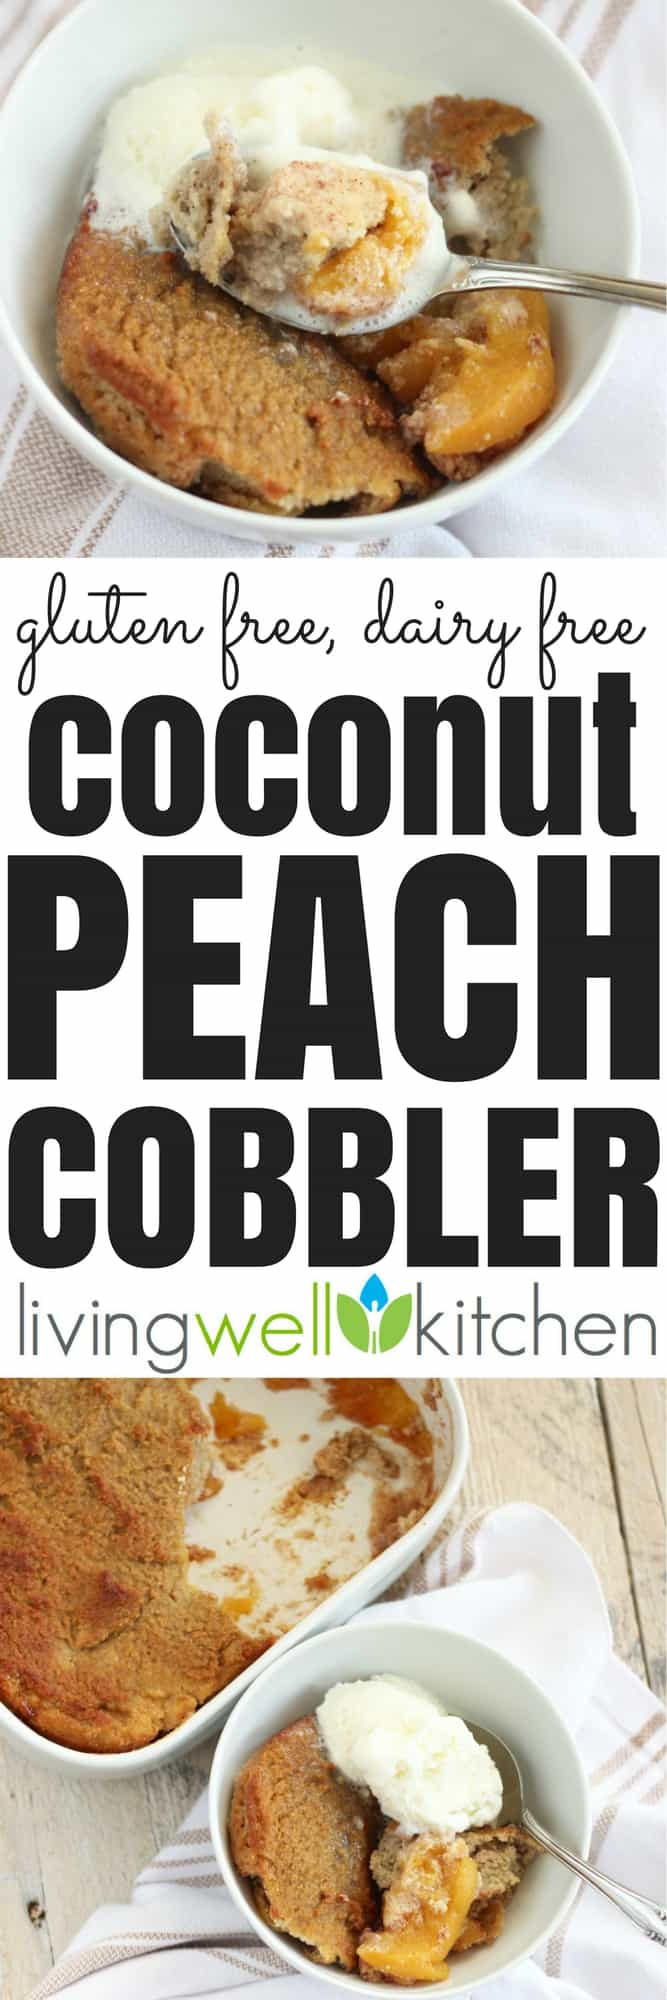 A gluten free, dairy free Coconut Peach Cobbler recipe made with nourishing ingredients that won't give you that dreaded sugar crash. Sweetened only with maple syrup, this dessert will leave your sweet craving satisfied without feeling sick